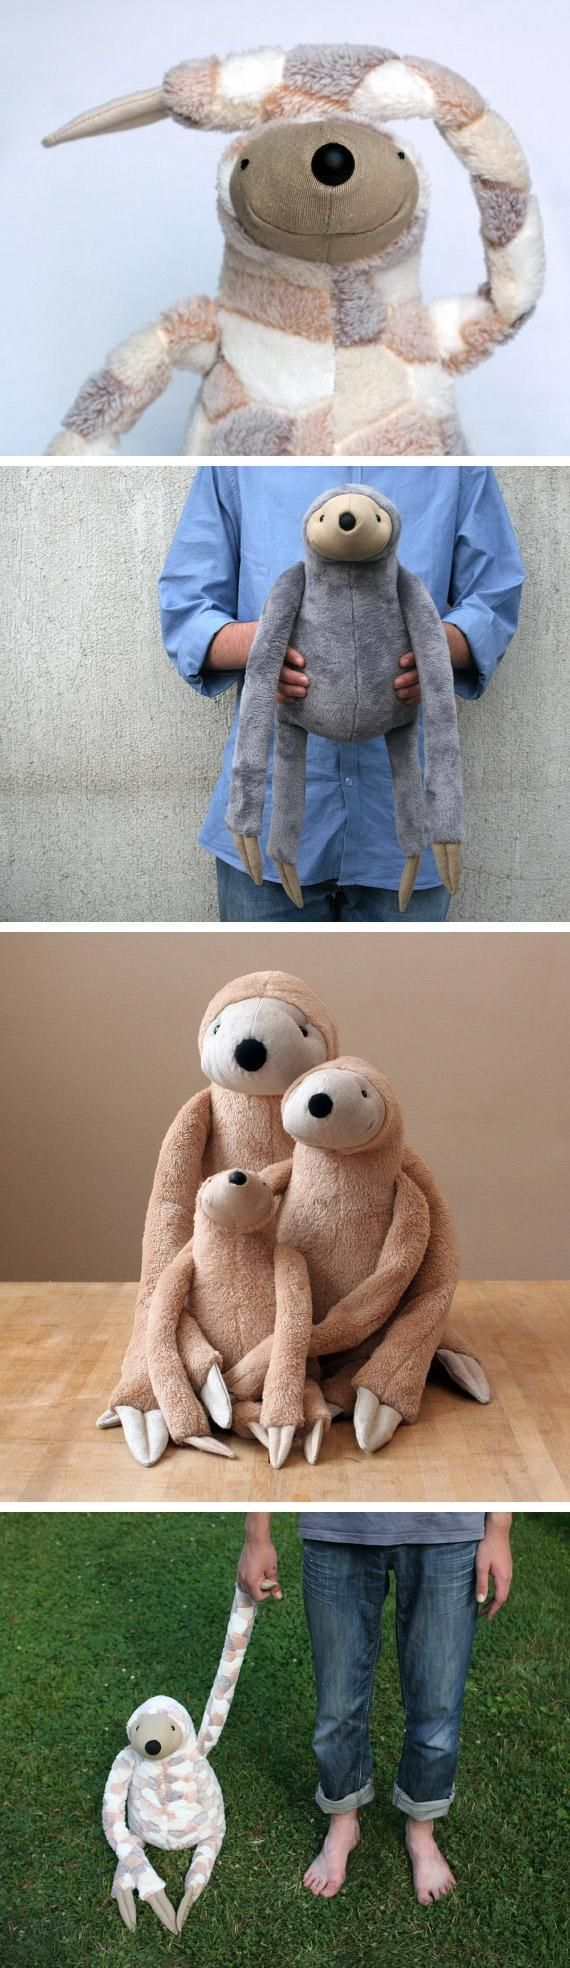 The Art Of Making Stuffed Toys - Bored Art